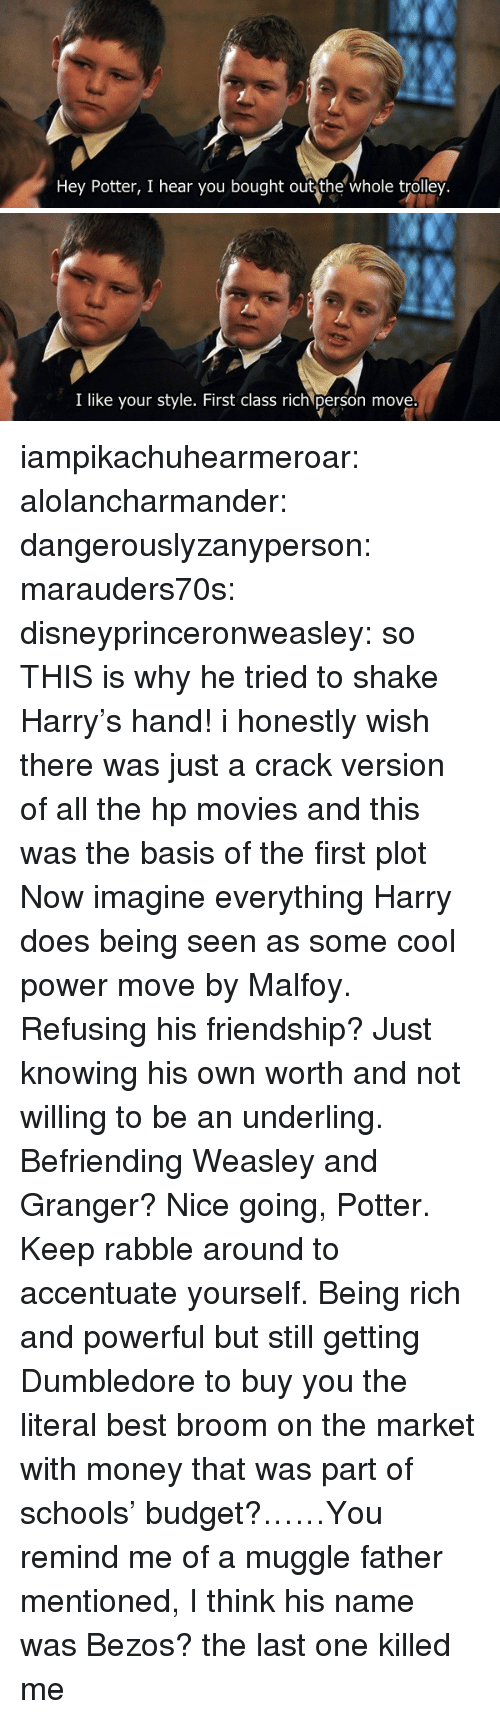 Being rich: Hey Potter, I hear you bought out the whole trolley.   I like your style. First class rich person move iampikachuhearmeroar: alolancharmander:  dangerouslyzanyperson:  marauders70s:  disneyprinceronweasley: so THIS is why he tried to shake Harry's hand! i honestly wish there was just a crack version of all the hp movies and this was the basis of the first plot   Now imagine everything Harry does being seen as some cool power move by Malfoy. Refusing his friendship? Just knowing his own worth and not willing to be an underling. Befriending Weasley and Granger? Nice going, Potter. Keep rabble around to accentuate yourself.  Being rich and powerful but still getting Dumbledore to buy you the literal best broom on the market with money that was part of schools' budget?……You remind me of a muggle father mentioned, I think his name was Bezos?   the last one killed me